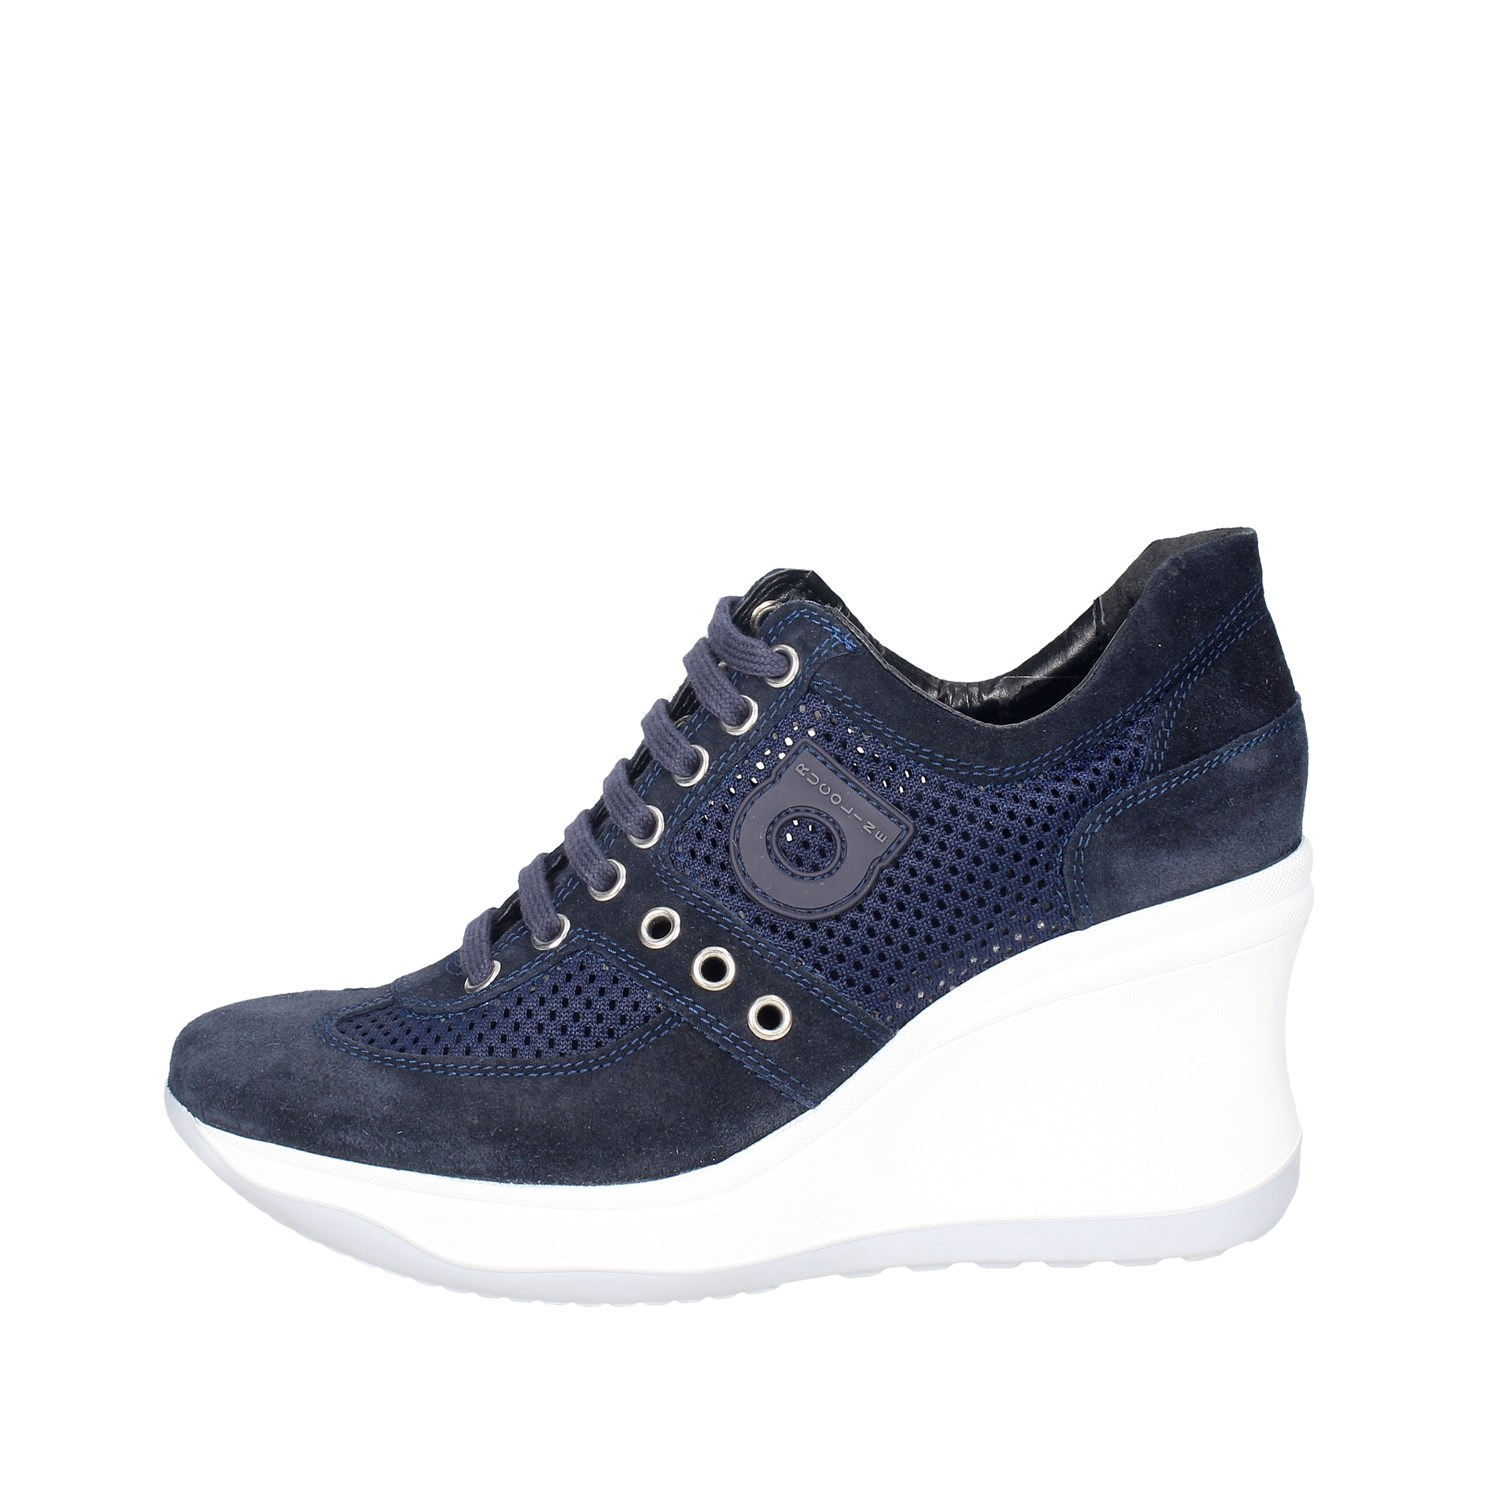 Hoch Frühjahr/Sommer Sneakers  Damen Agile By Rucoline  1800(A9) Frühjahr/Sommer Hoch c32a8a